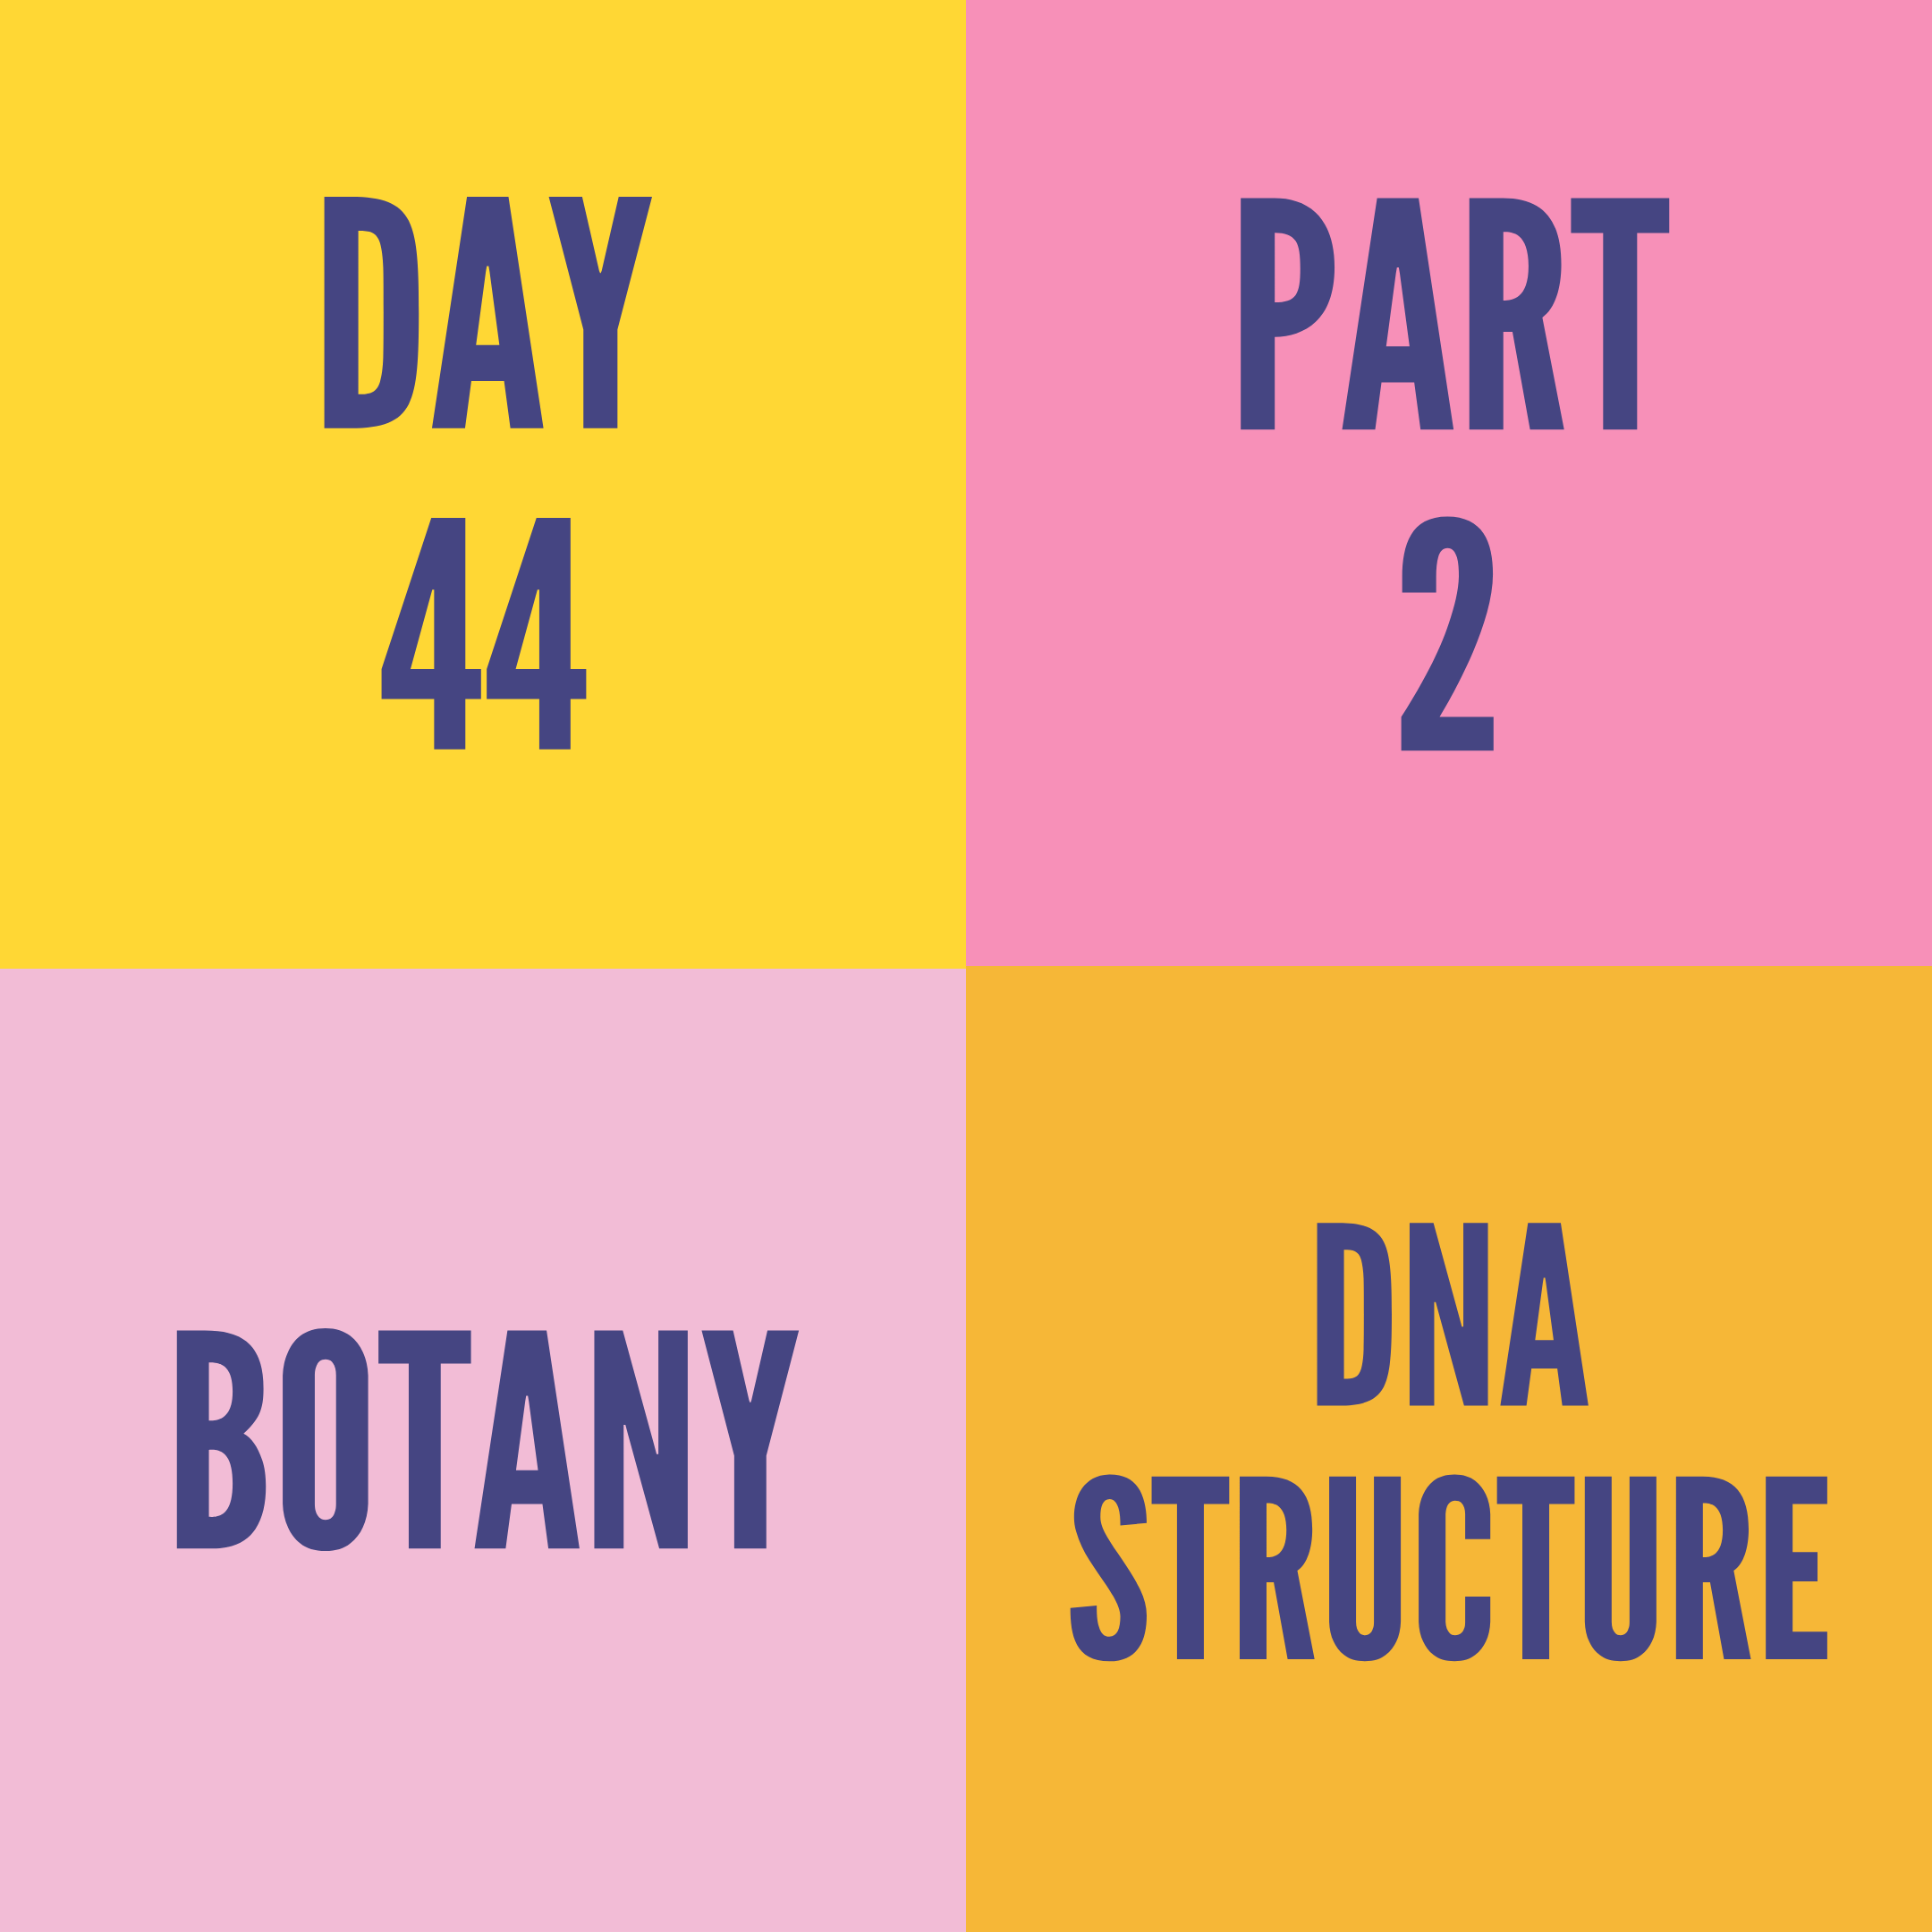 DAY-44 PART-2 DNA STRUCTURE